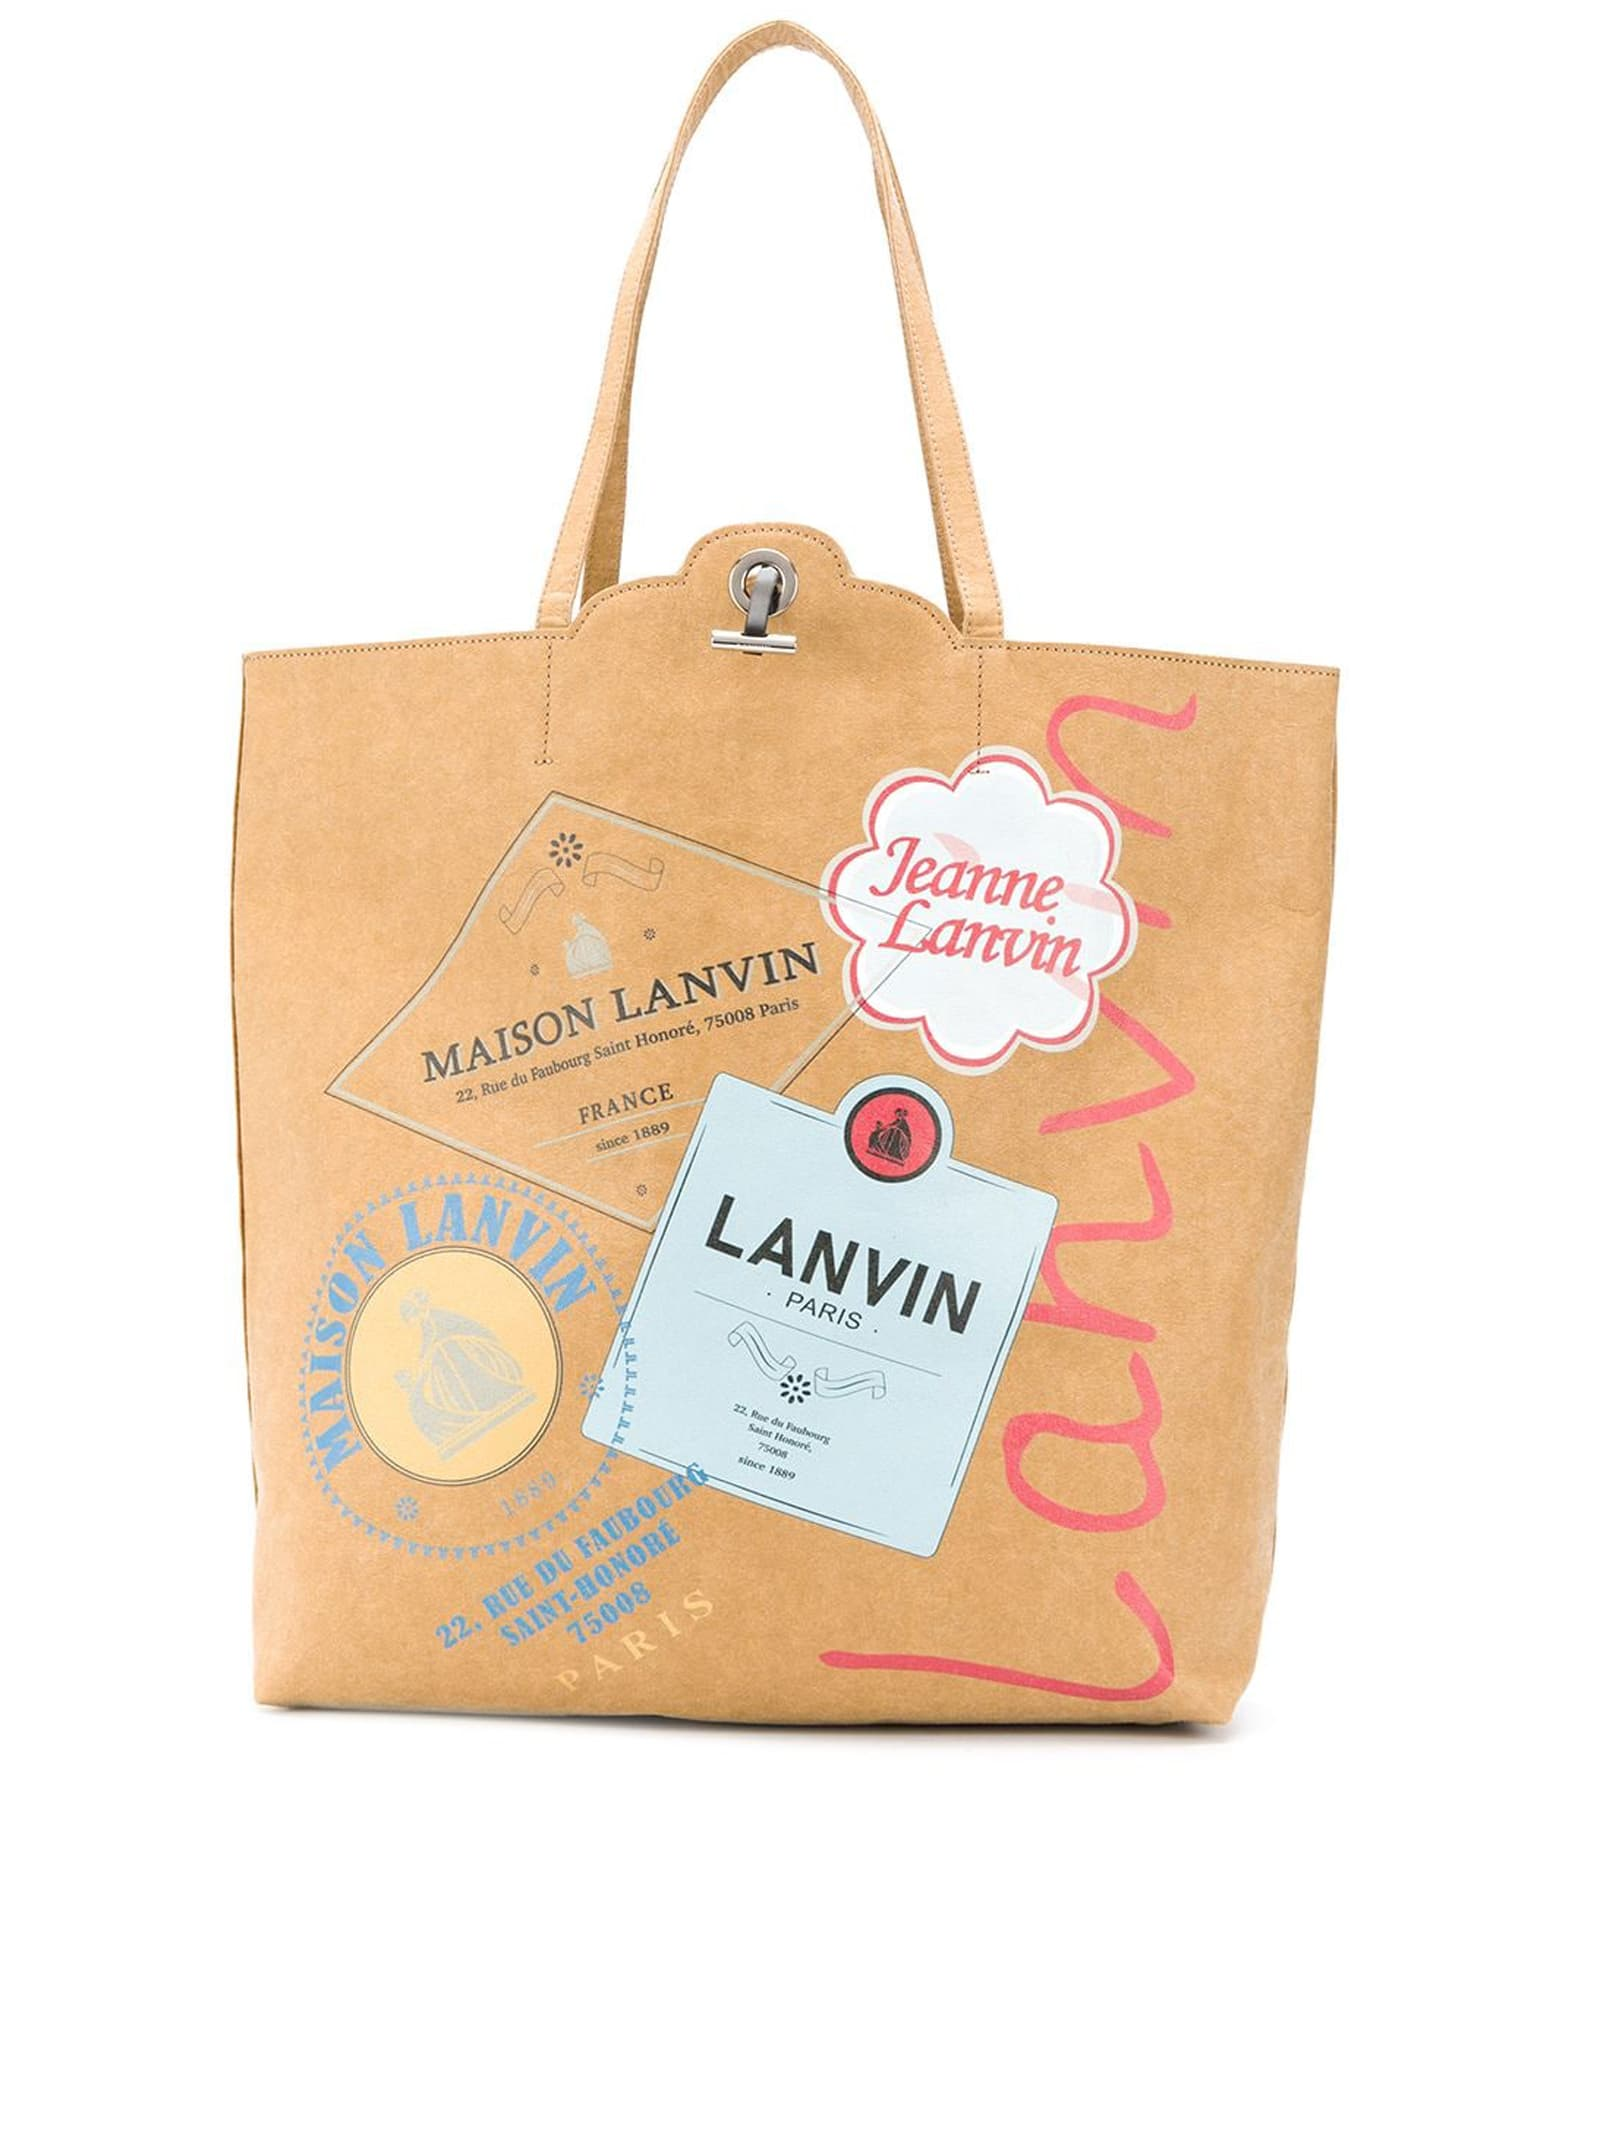 LANVIN TOTE SHOPPING BAG GROCERY